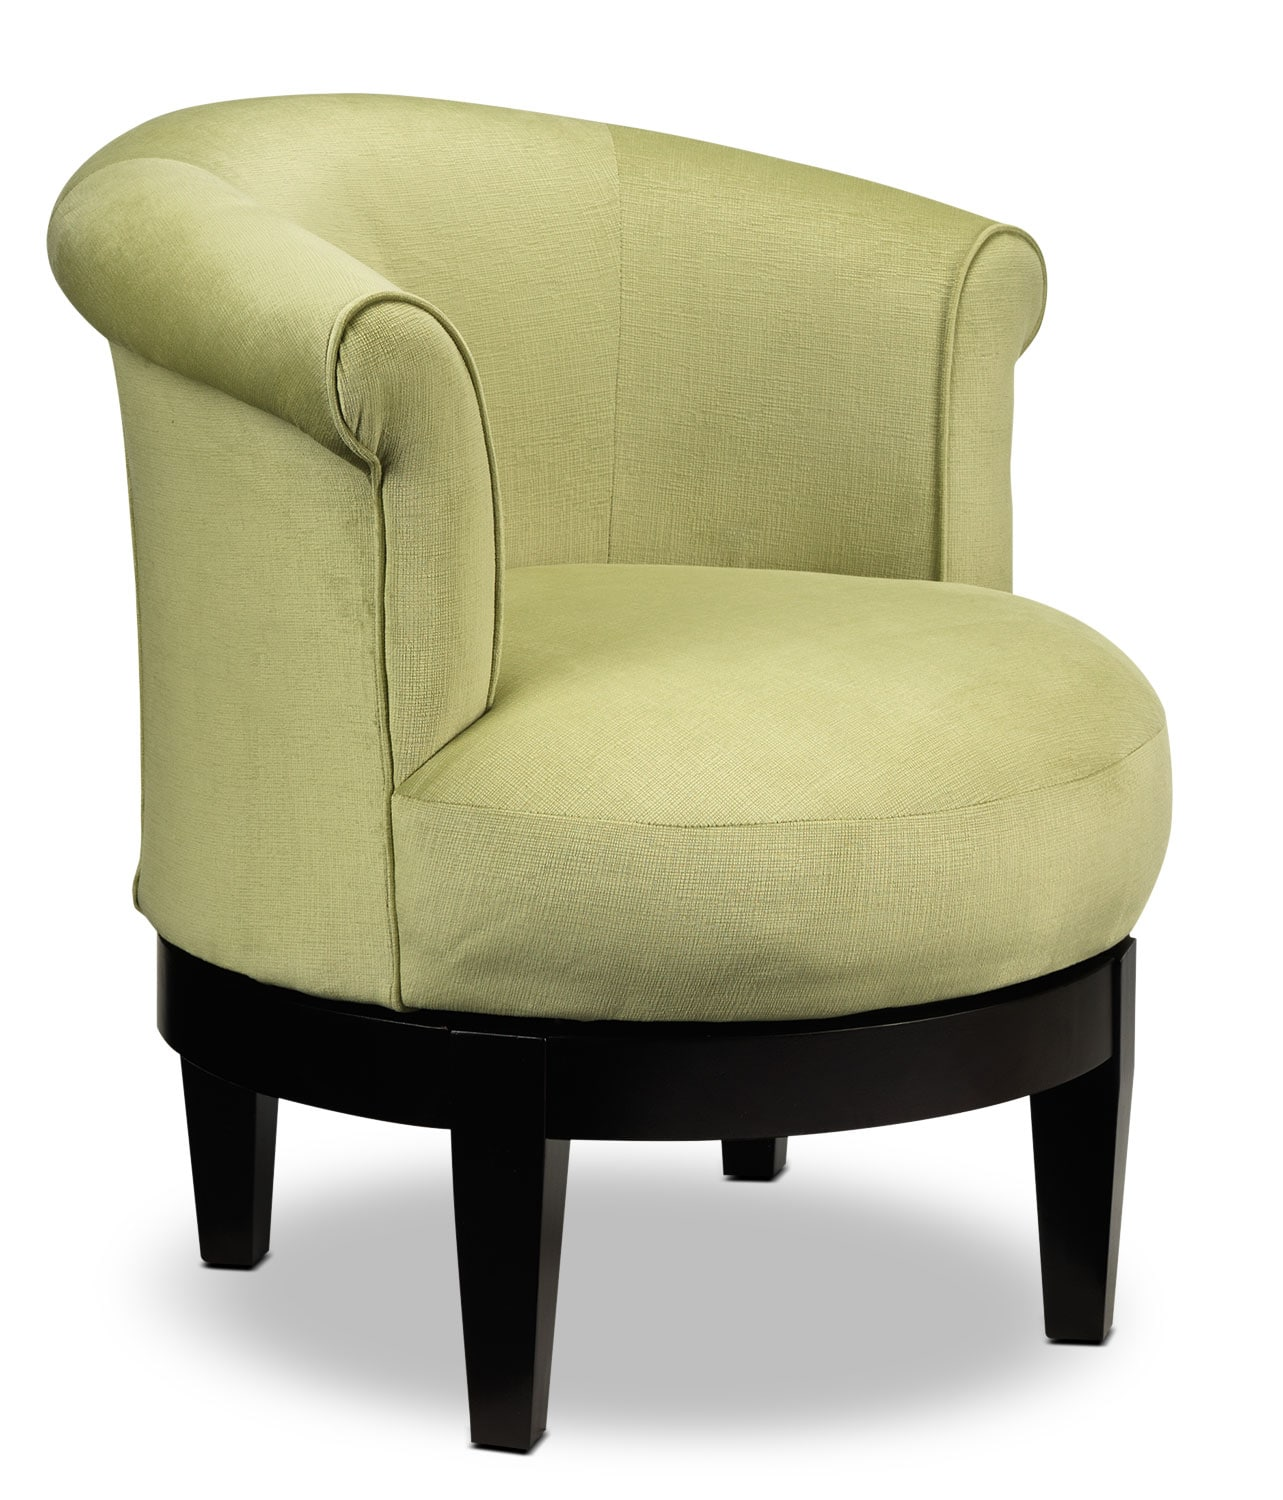 Attica accent swivel chair lime leon 39 s - Swivel chair living room furniture ...